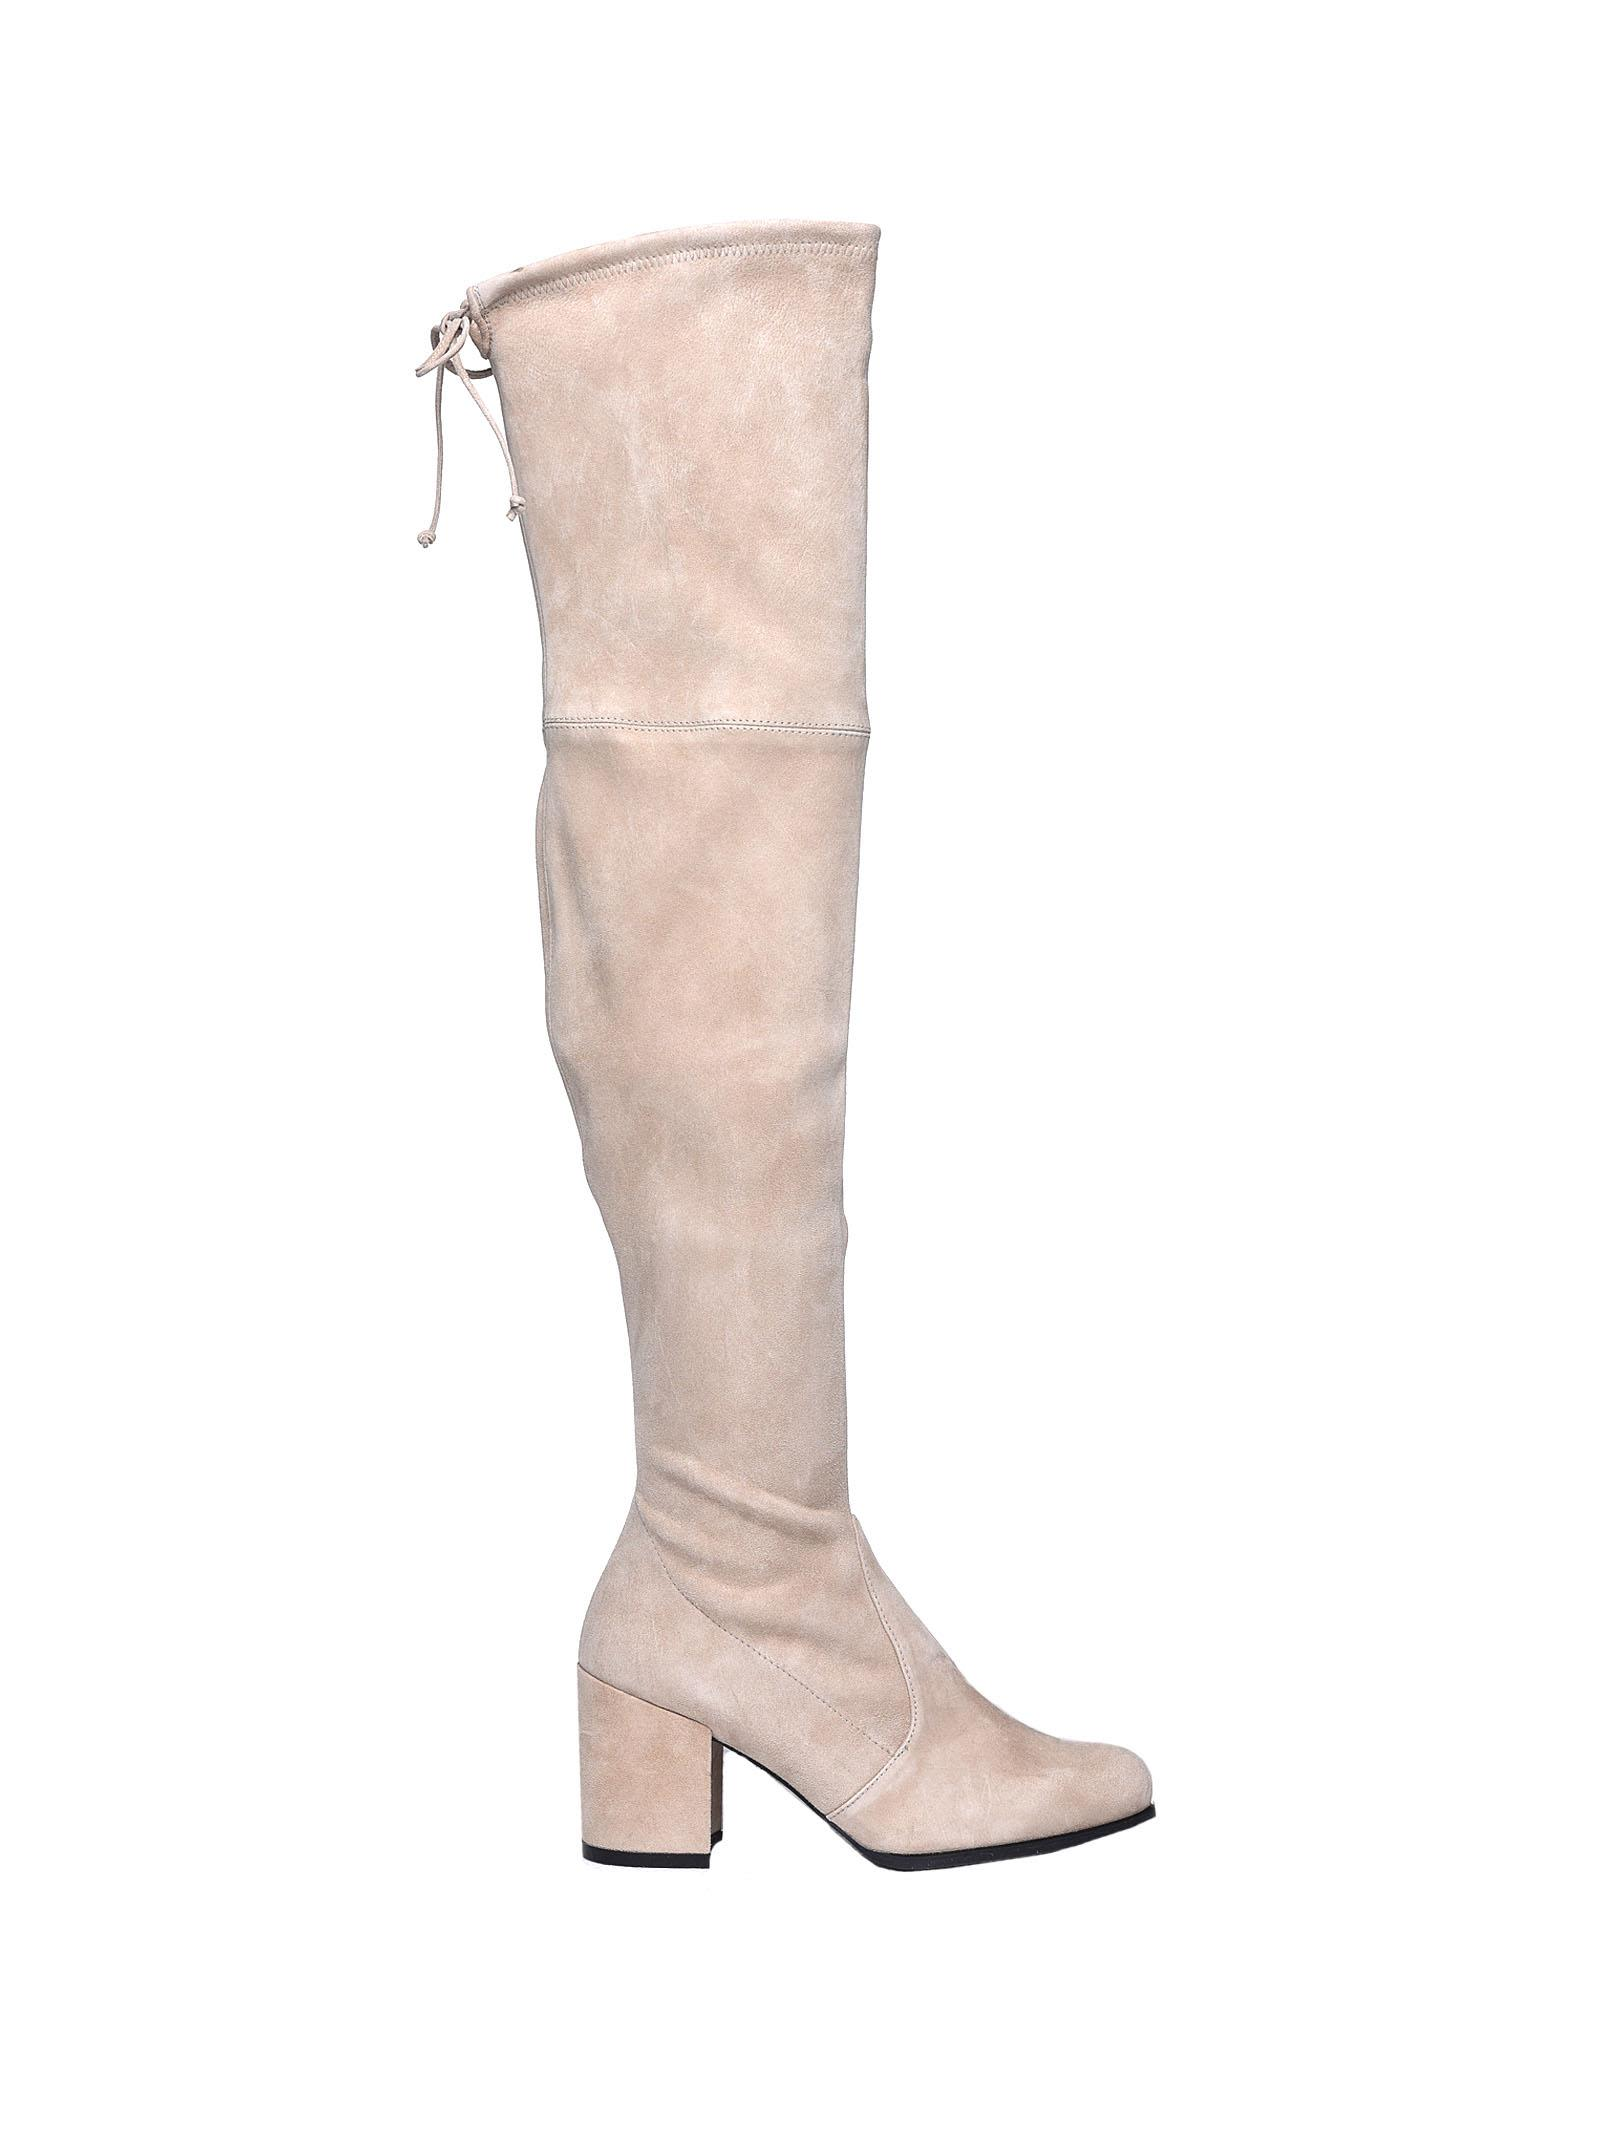 The Tieland Beige Boots